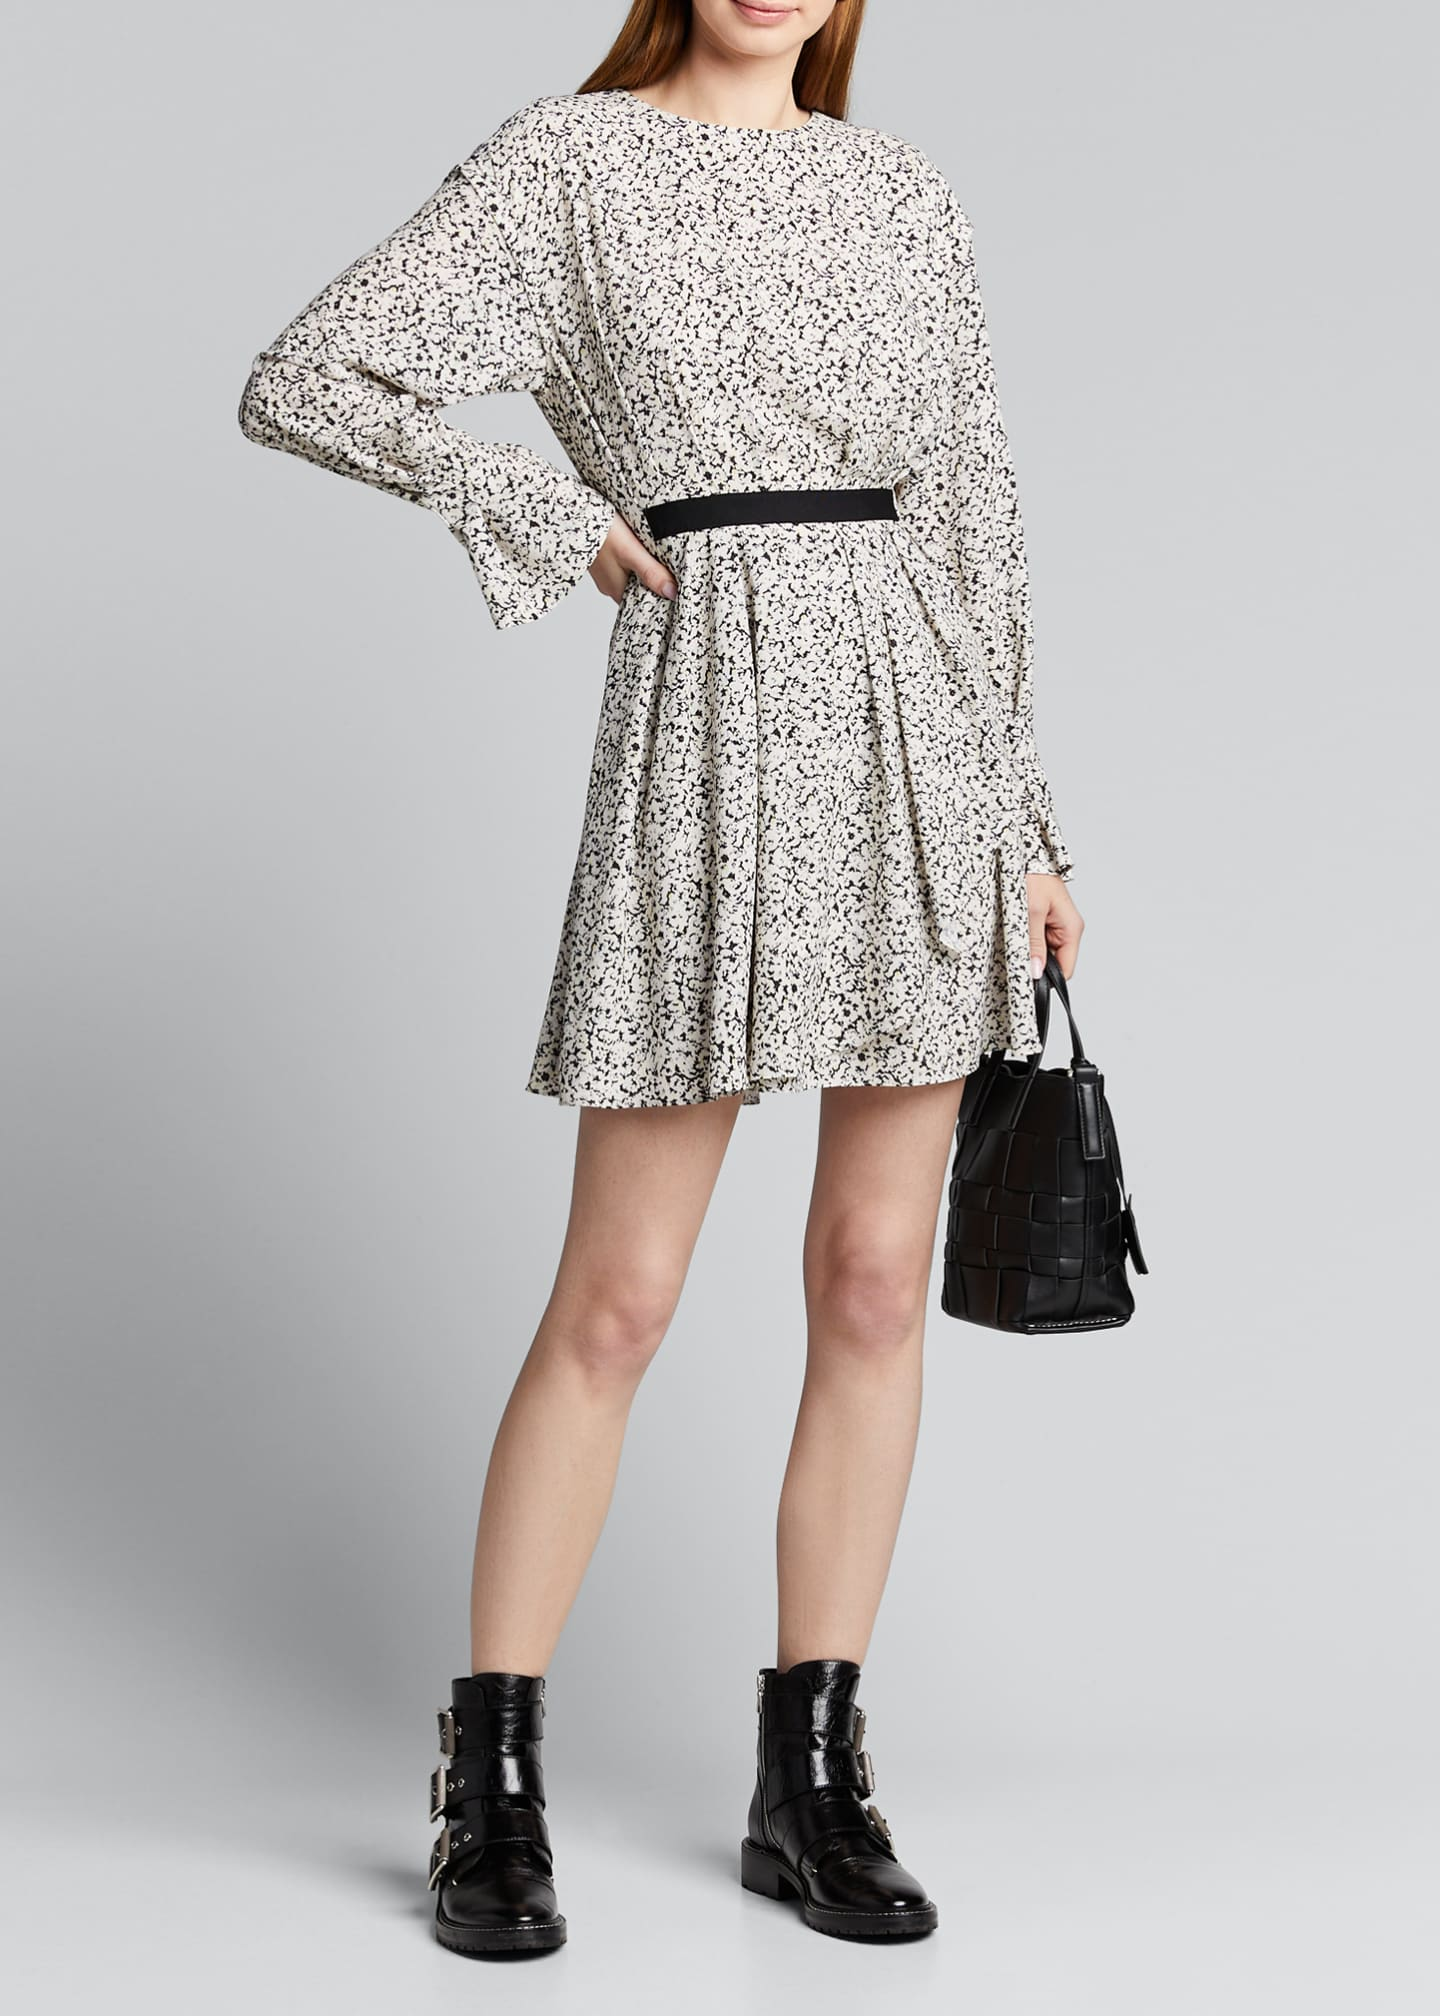 Jason Wu Inverse Floral Long-Sleeve Mini Dress